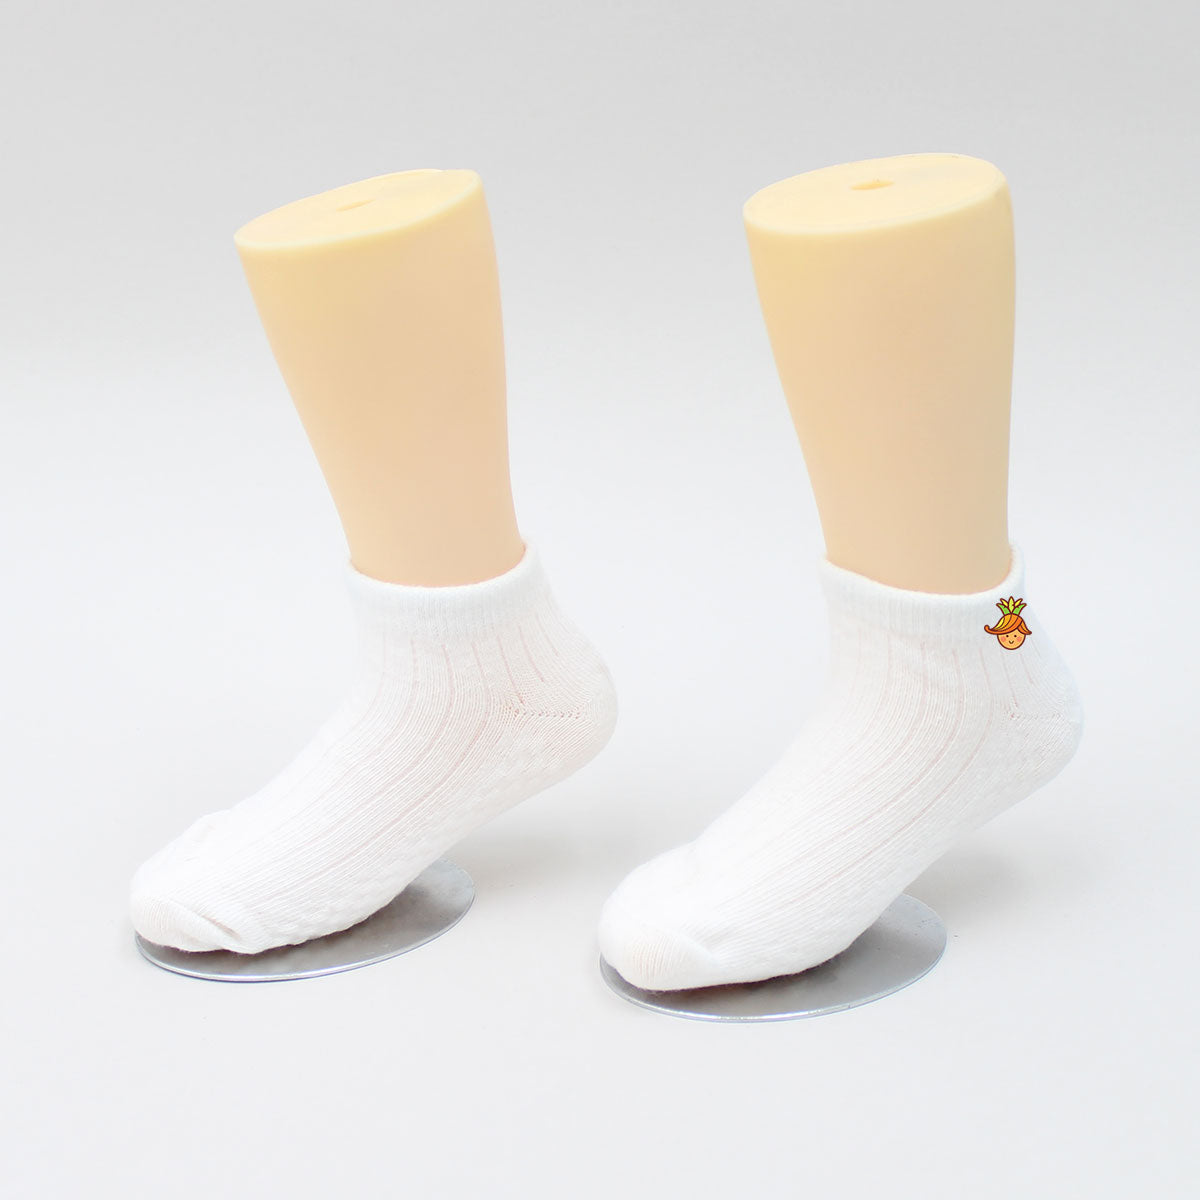 White Ankle Socks - Set Of 2